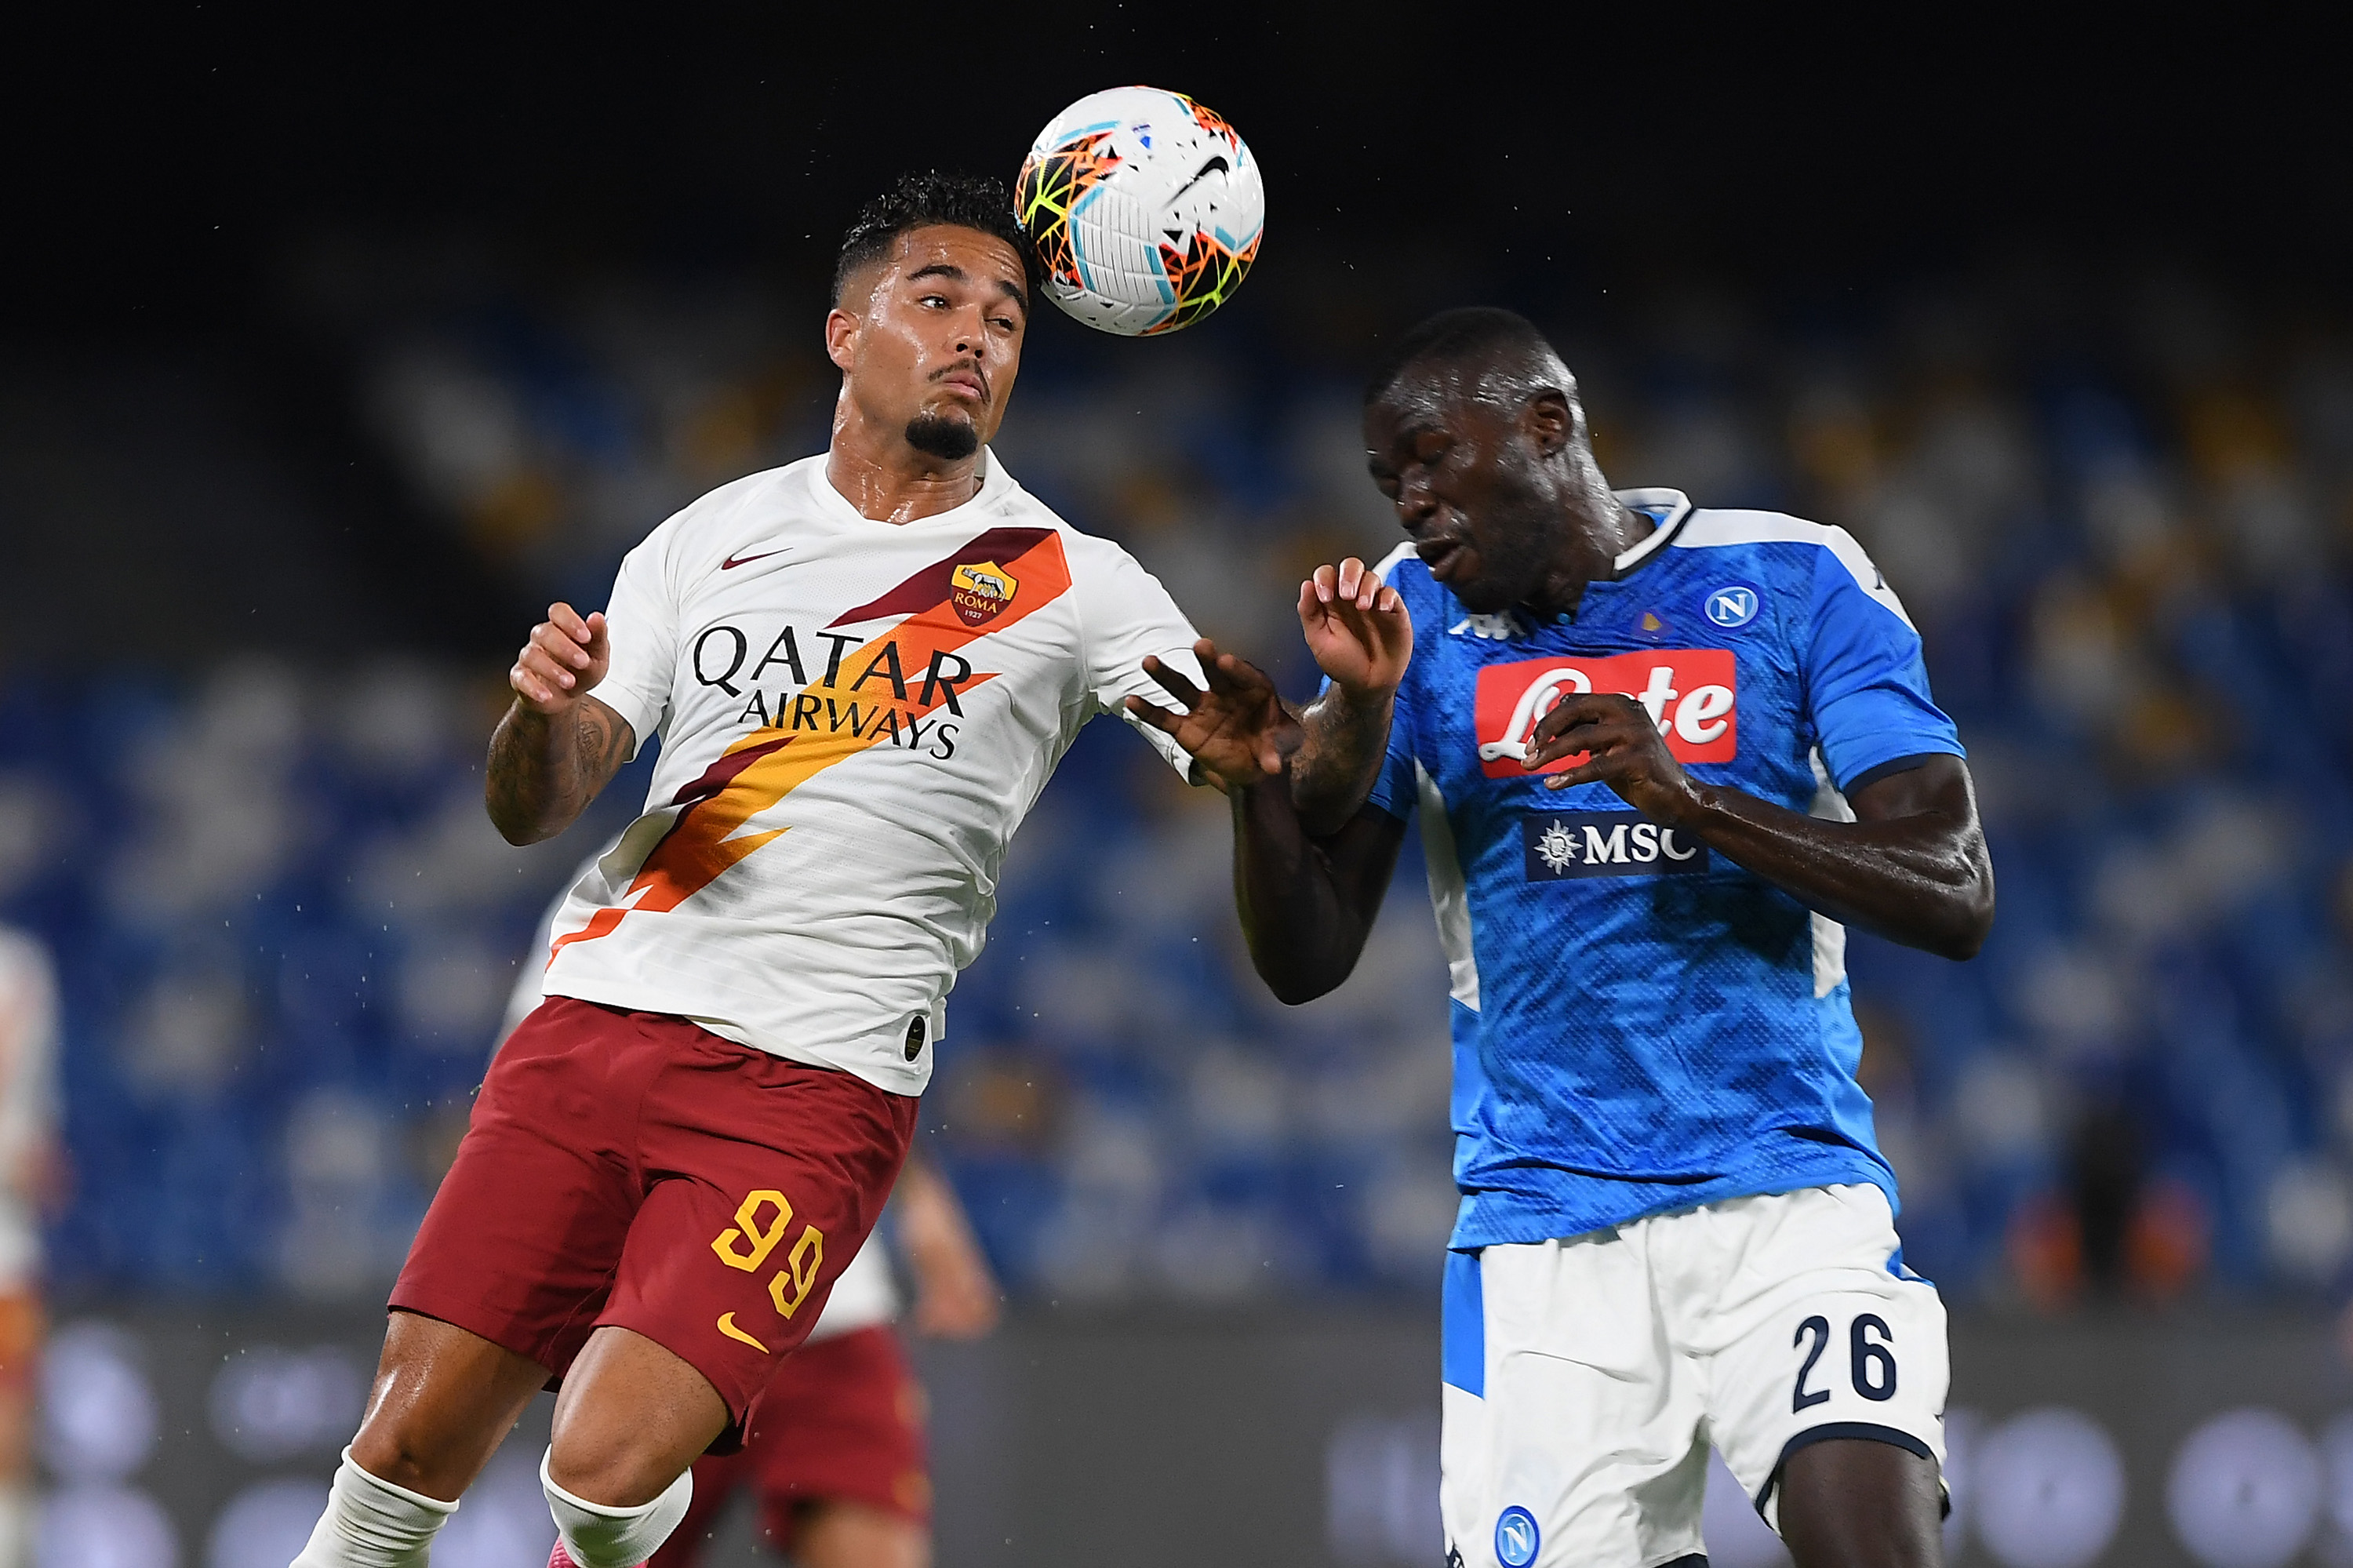 Update on Manchester United's pursuit of Kalidou Koulibaly who is seen in the photo